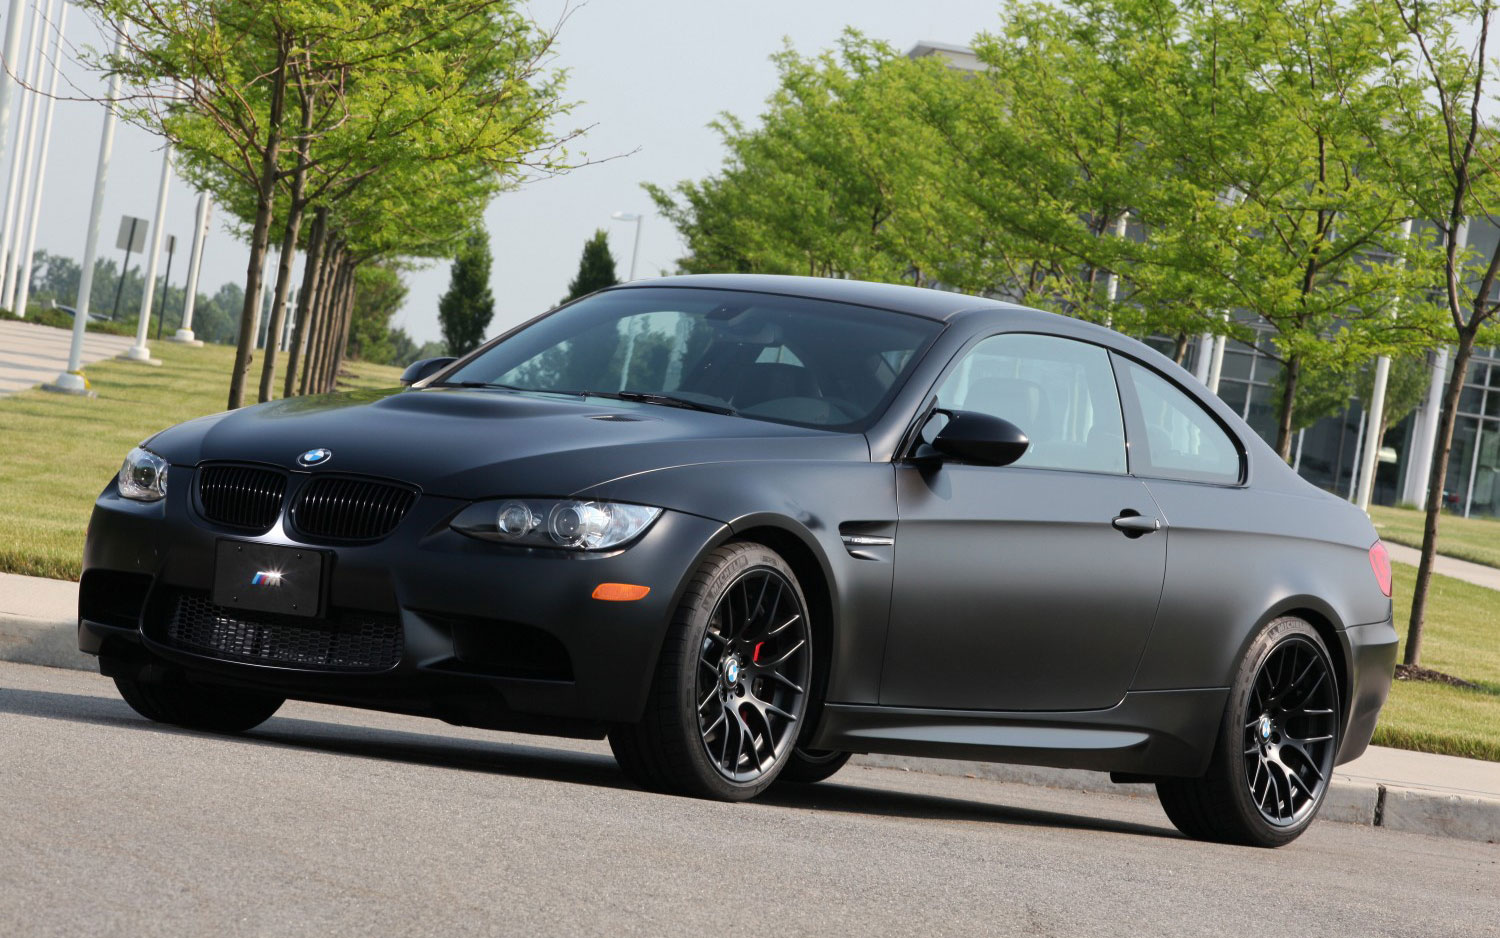 Frozen Black Edition Bmw M3 To Be Sold In U S Limited To 20 Units